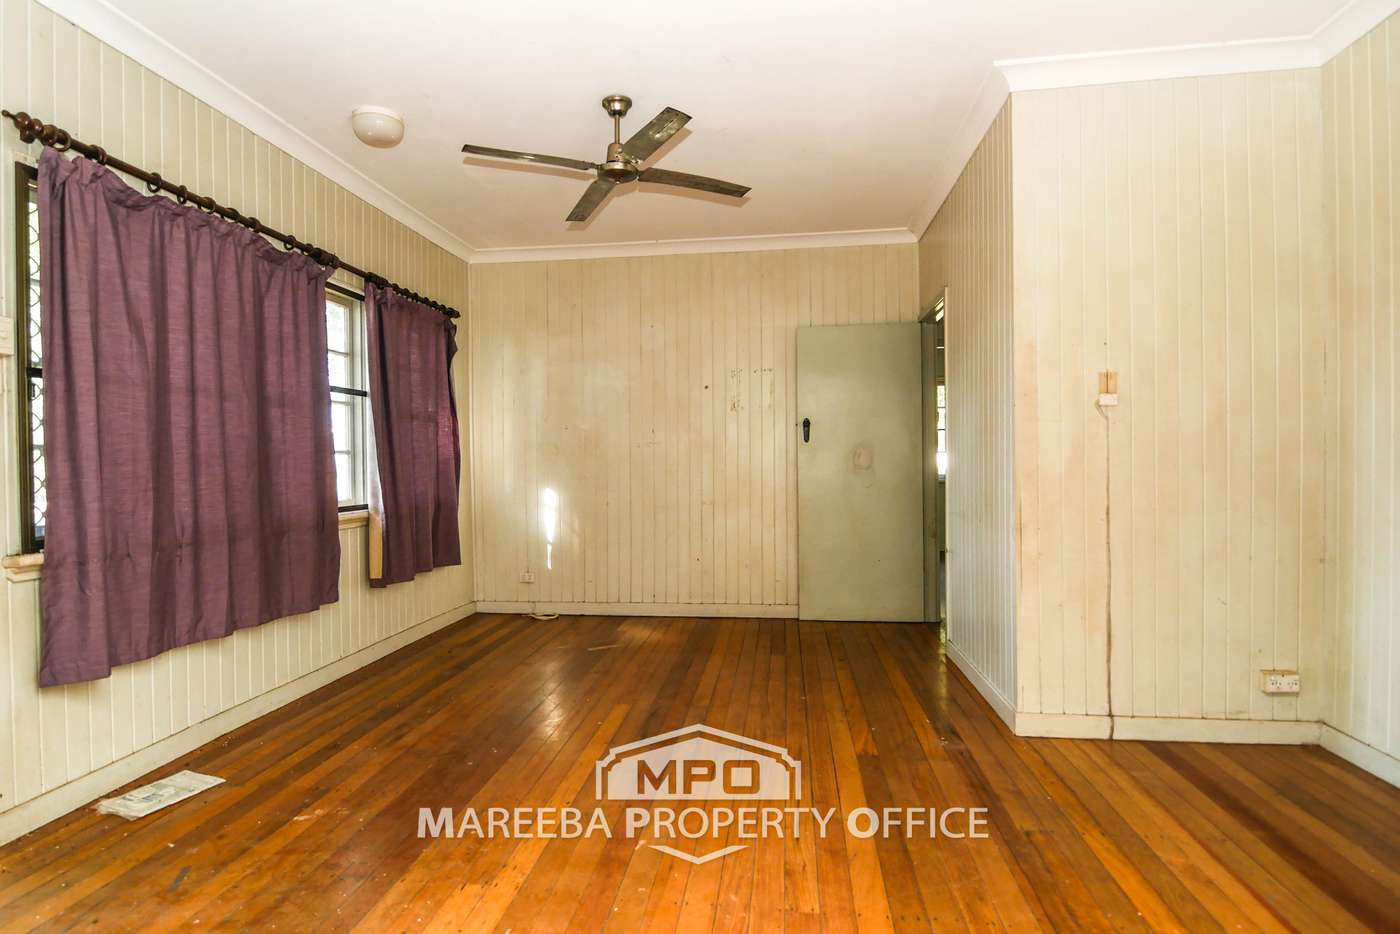 Sixth view of Homely house listing, 286 Byrnes Street, Mareeba QLD 4880